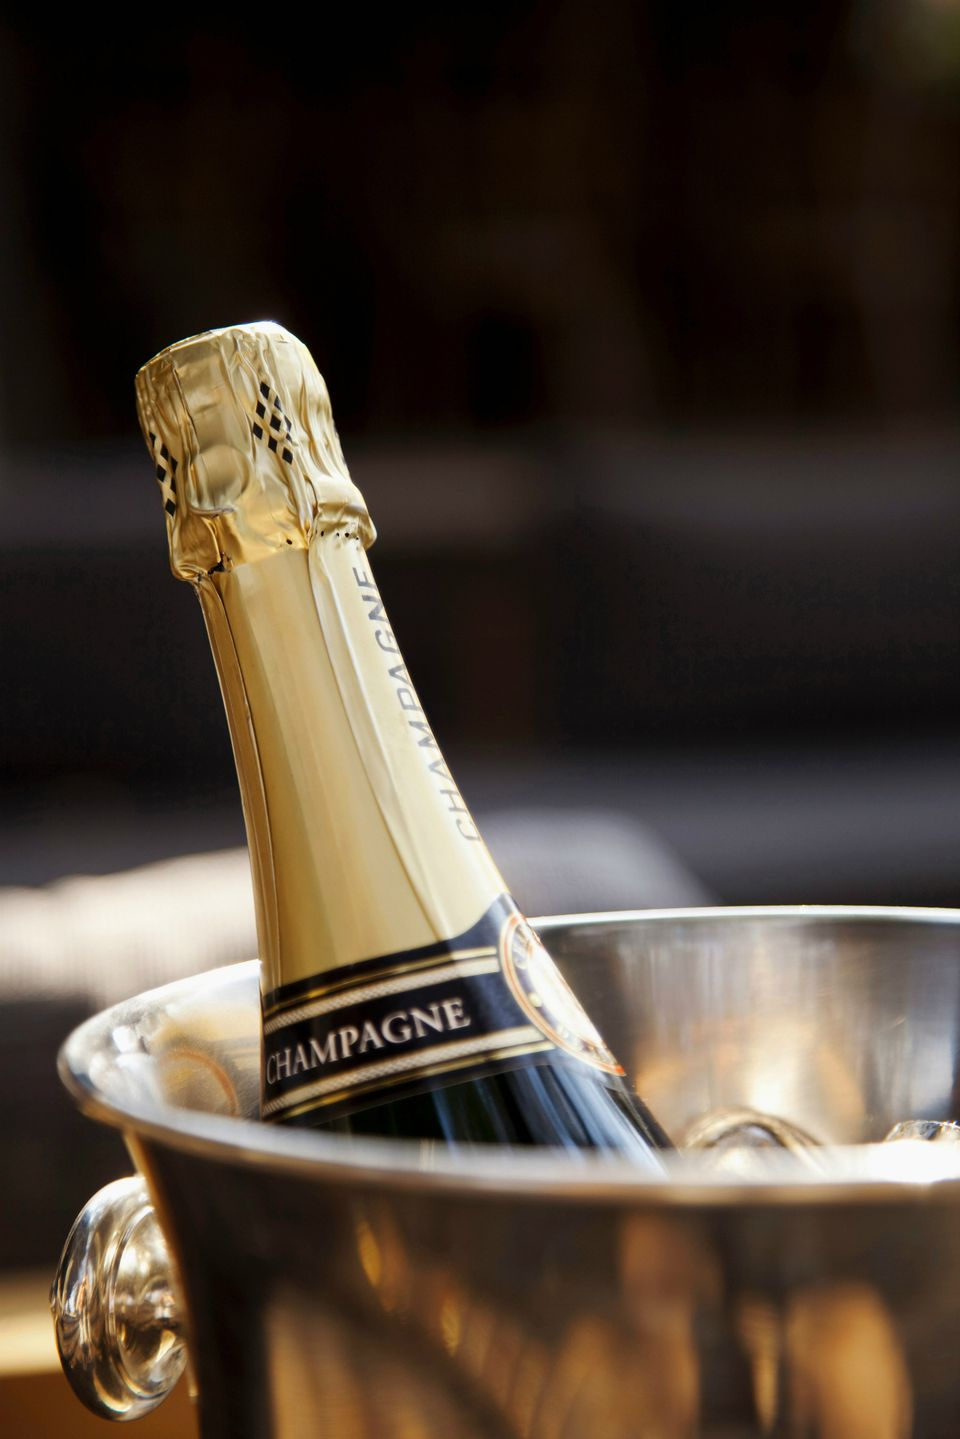 Champagne chilling in bucket